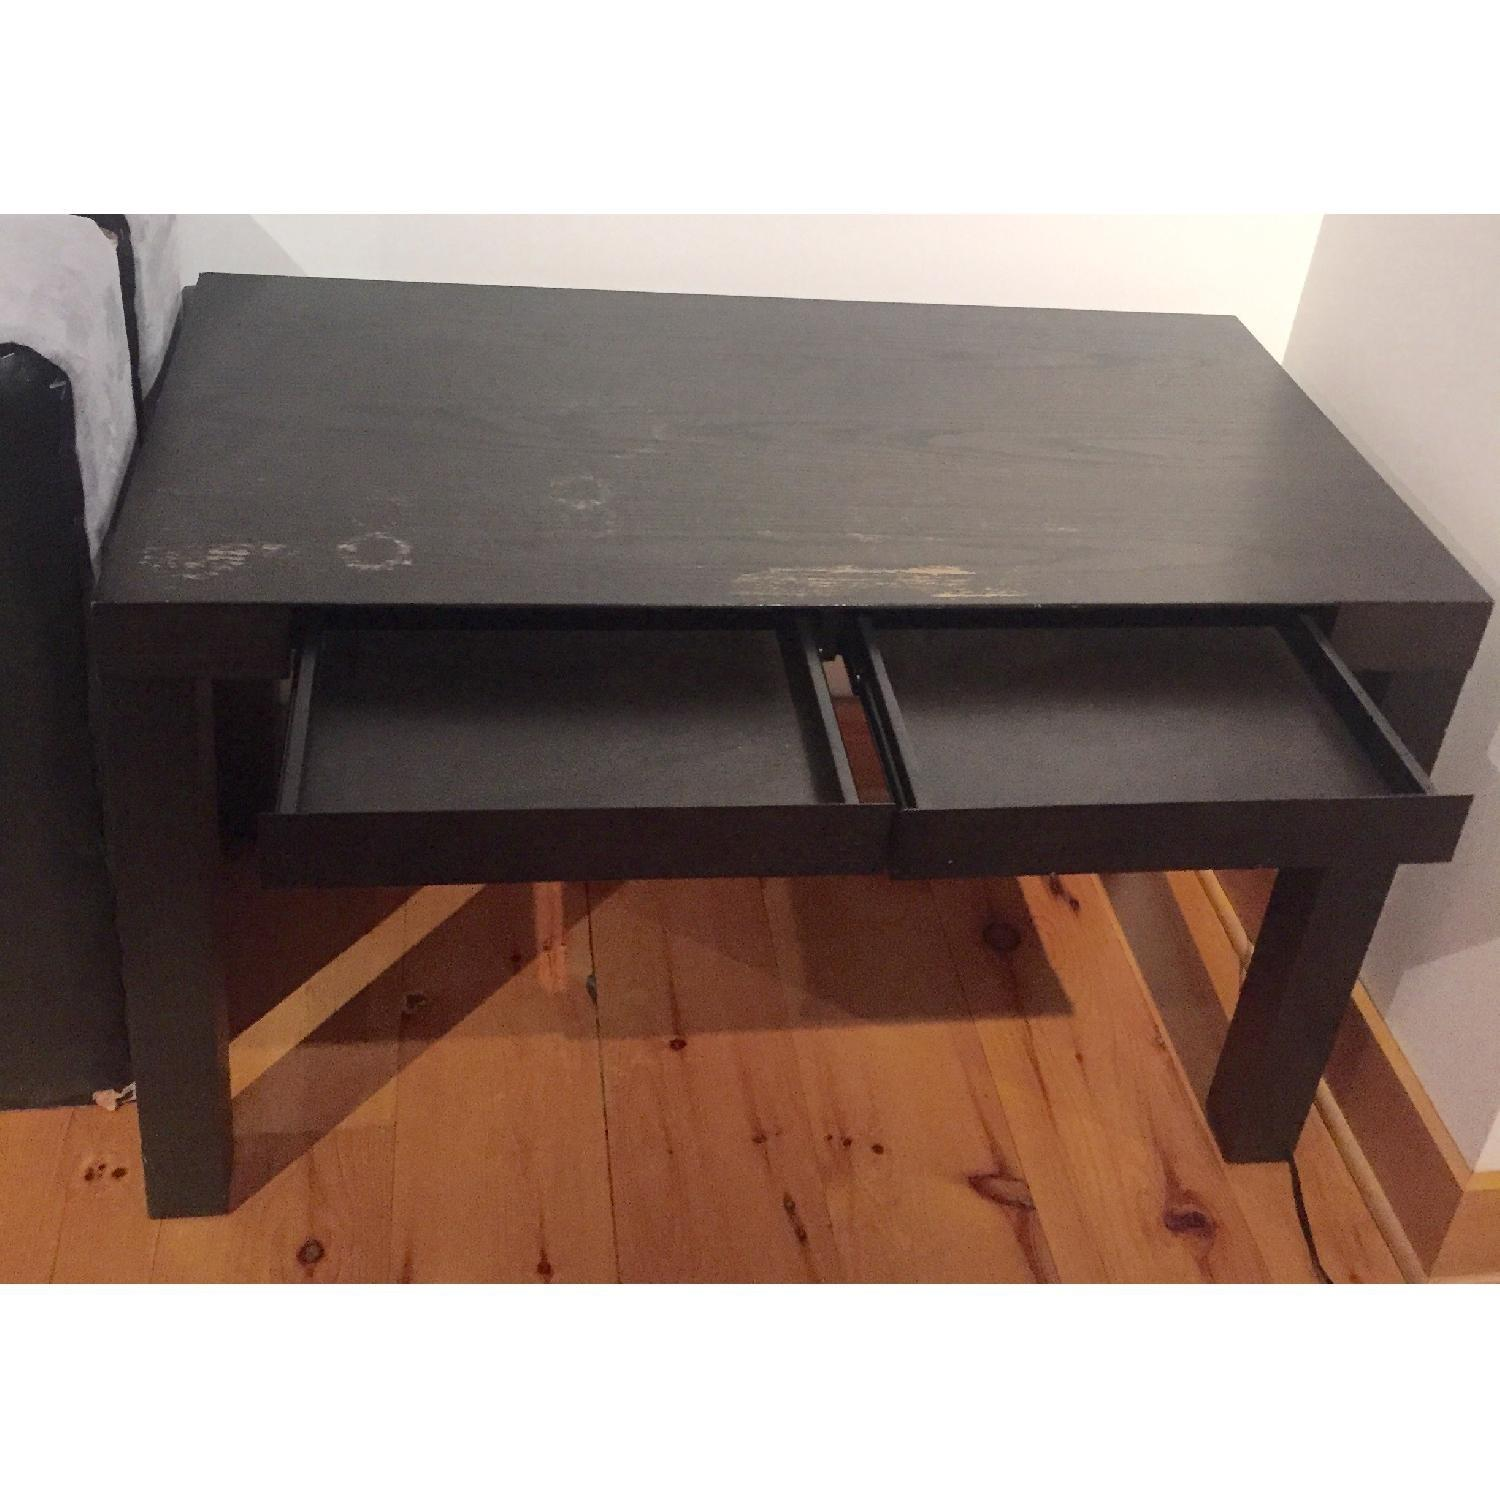 West Elm Parsons Desk in Chocolate - image-2